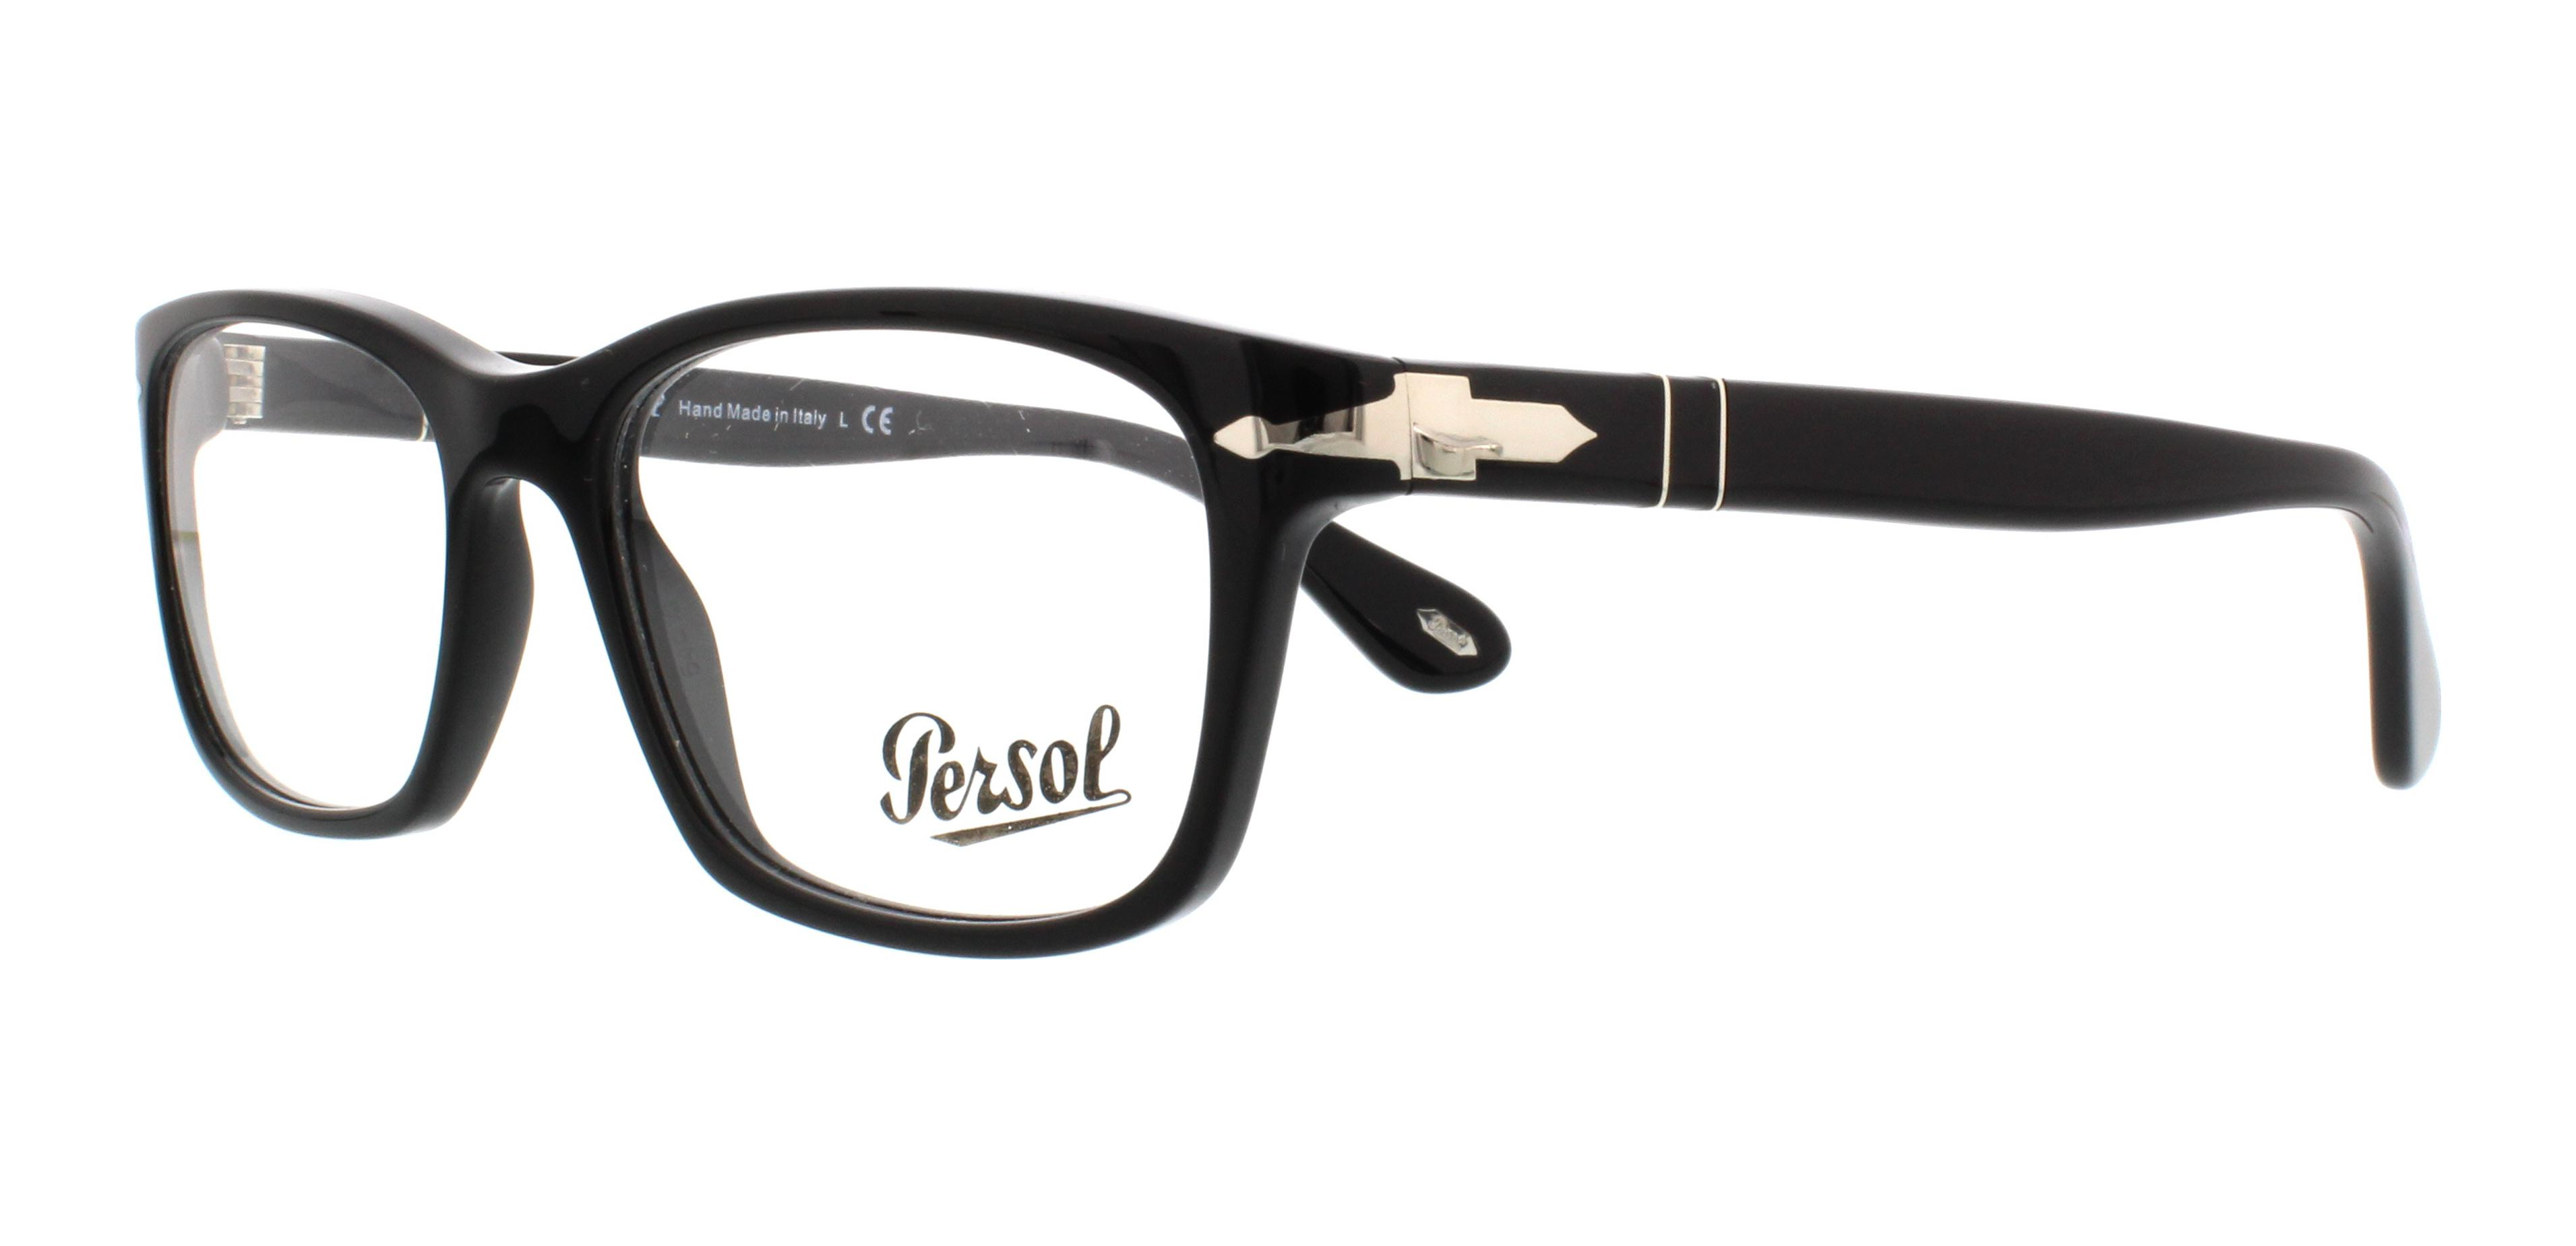 bd8e61b624 Persol Prescription Glasses - Best Glasses Cnapracticetesting.Com 2018